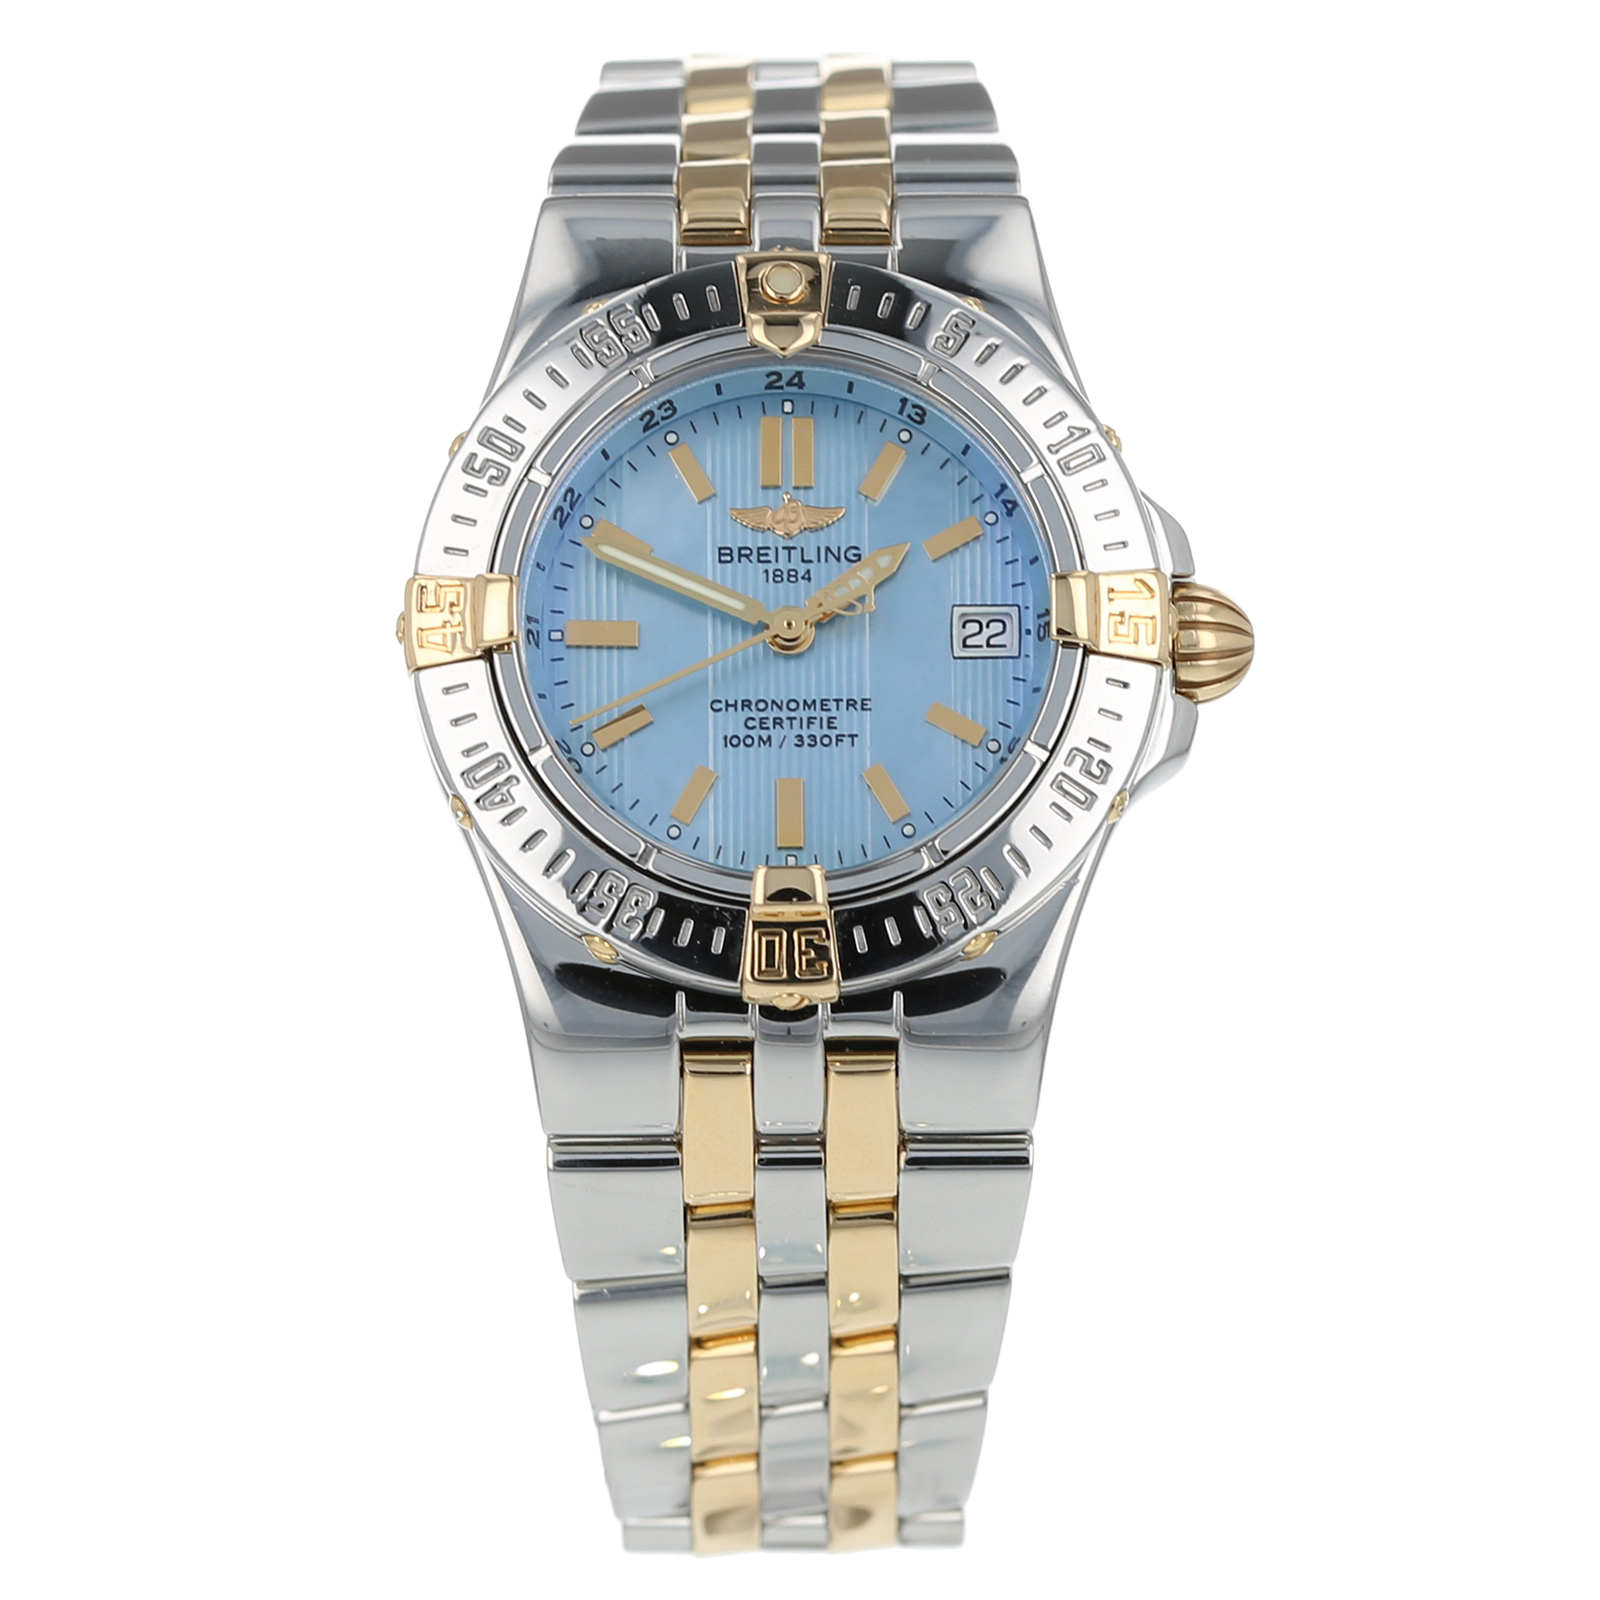 Pre-Owned Breitling Ladies Watch, Circa 2009